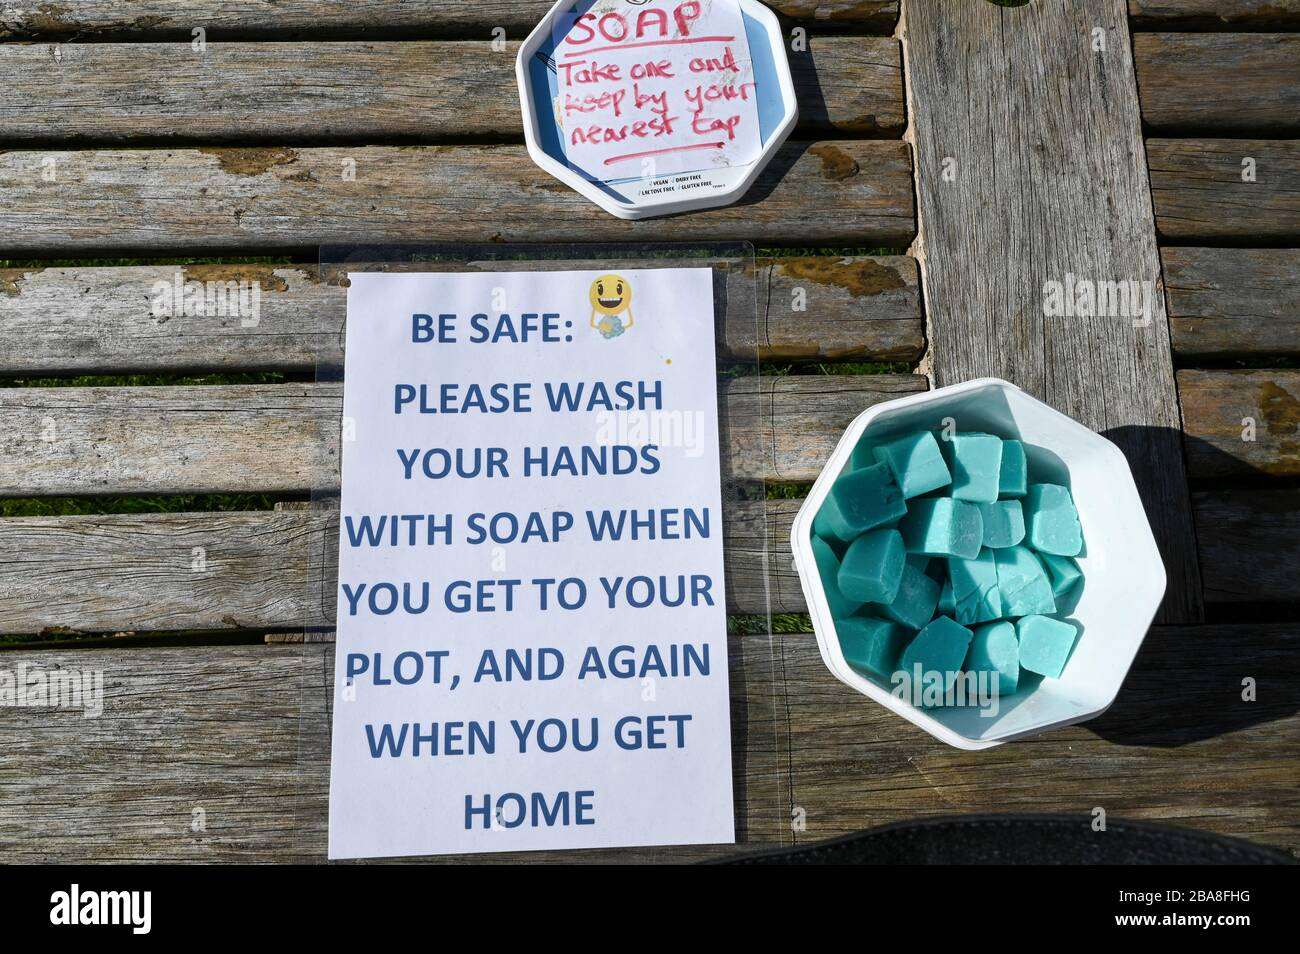 Covid19 hygiene. A container of complimentary soap with instructions to wash hands on an allotment garden during the coronavirus pandemic. Stock Photo